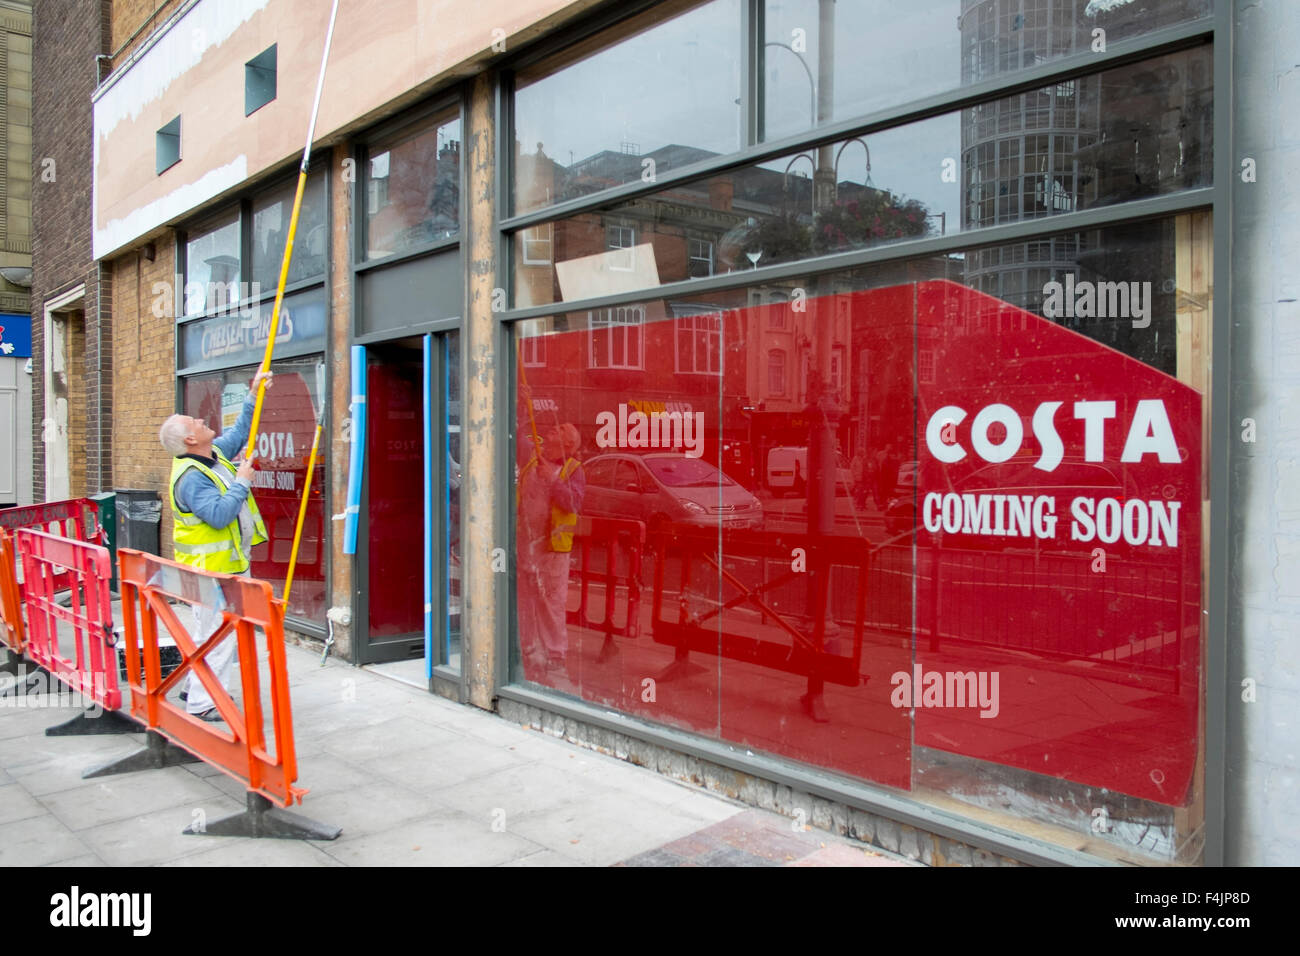 Shop Opening Soon High Resolution Stock Photography And Images Alamy